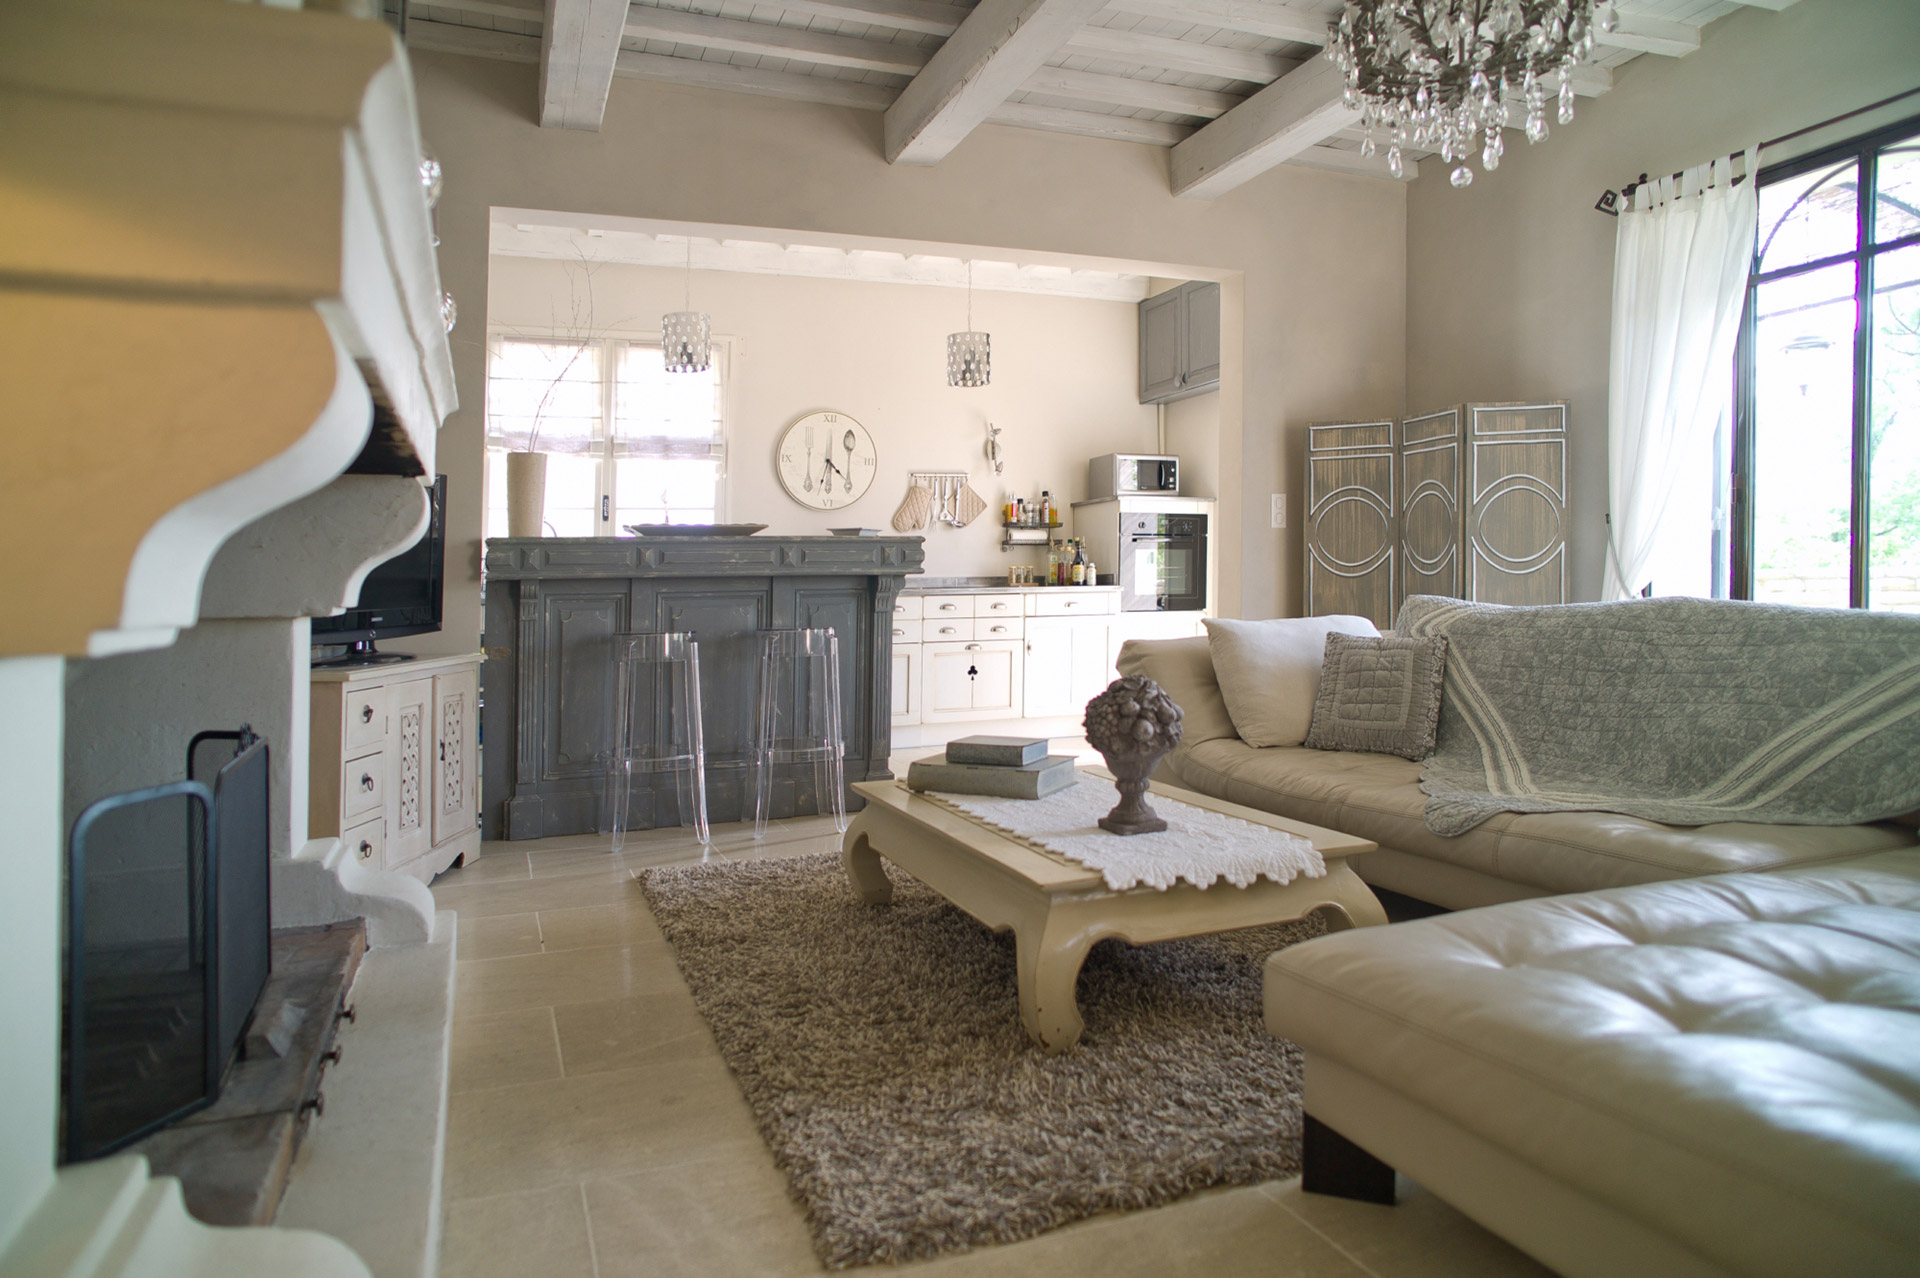 ventes a gordes en vente maison en pierre r nov e avec. Black Bedroom Furniture Sets. Home Design Ideas